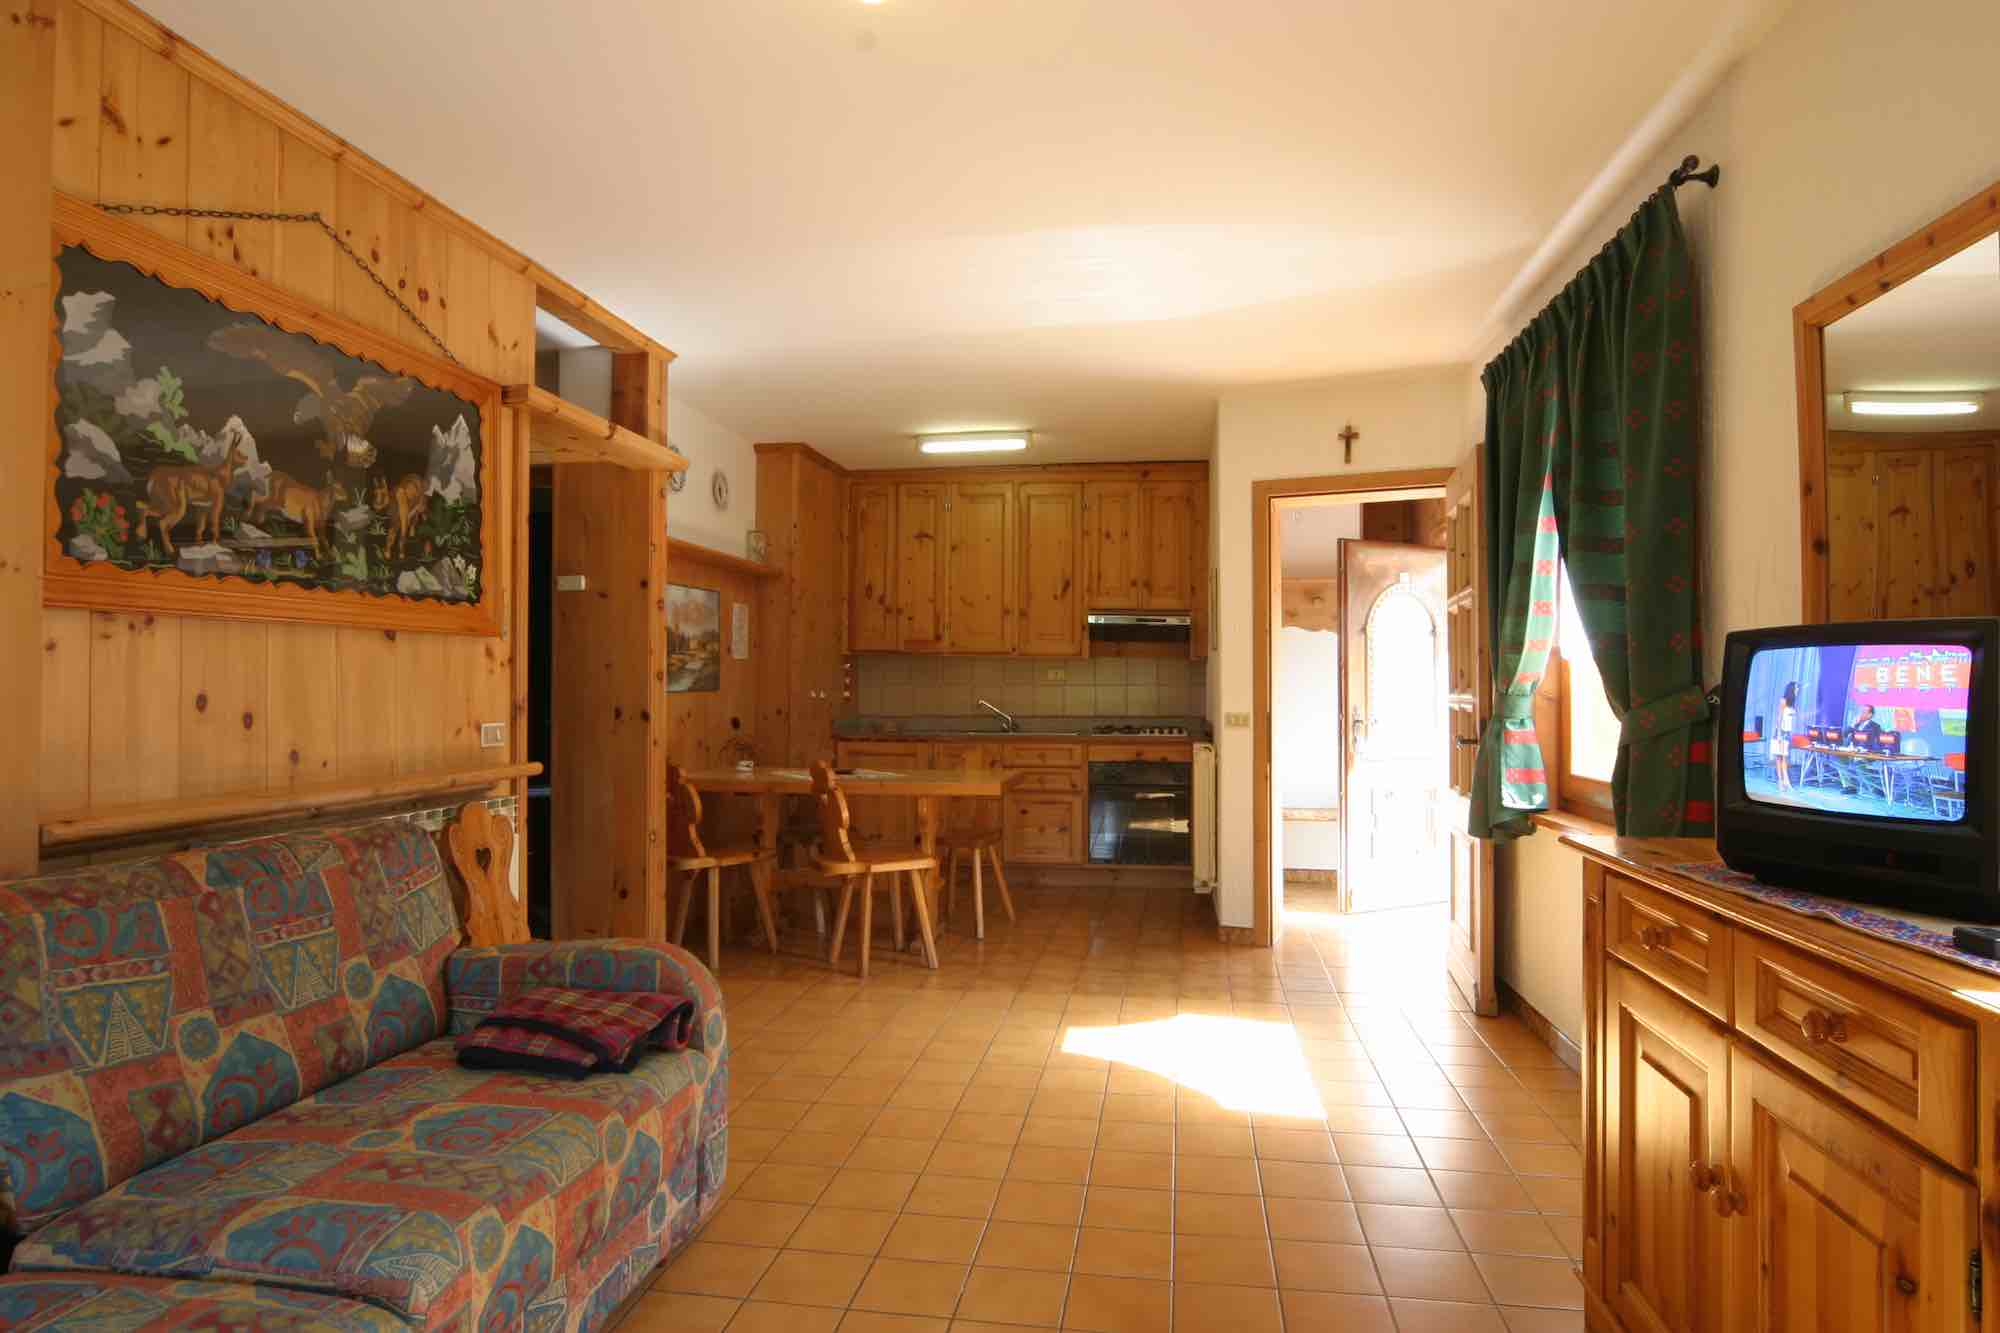 Bait da Borch - Via Saroch N.1430/f, Livigno 23041 - Apartment - Appartamento Eira 1